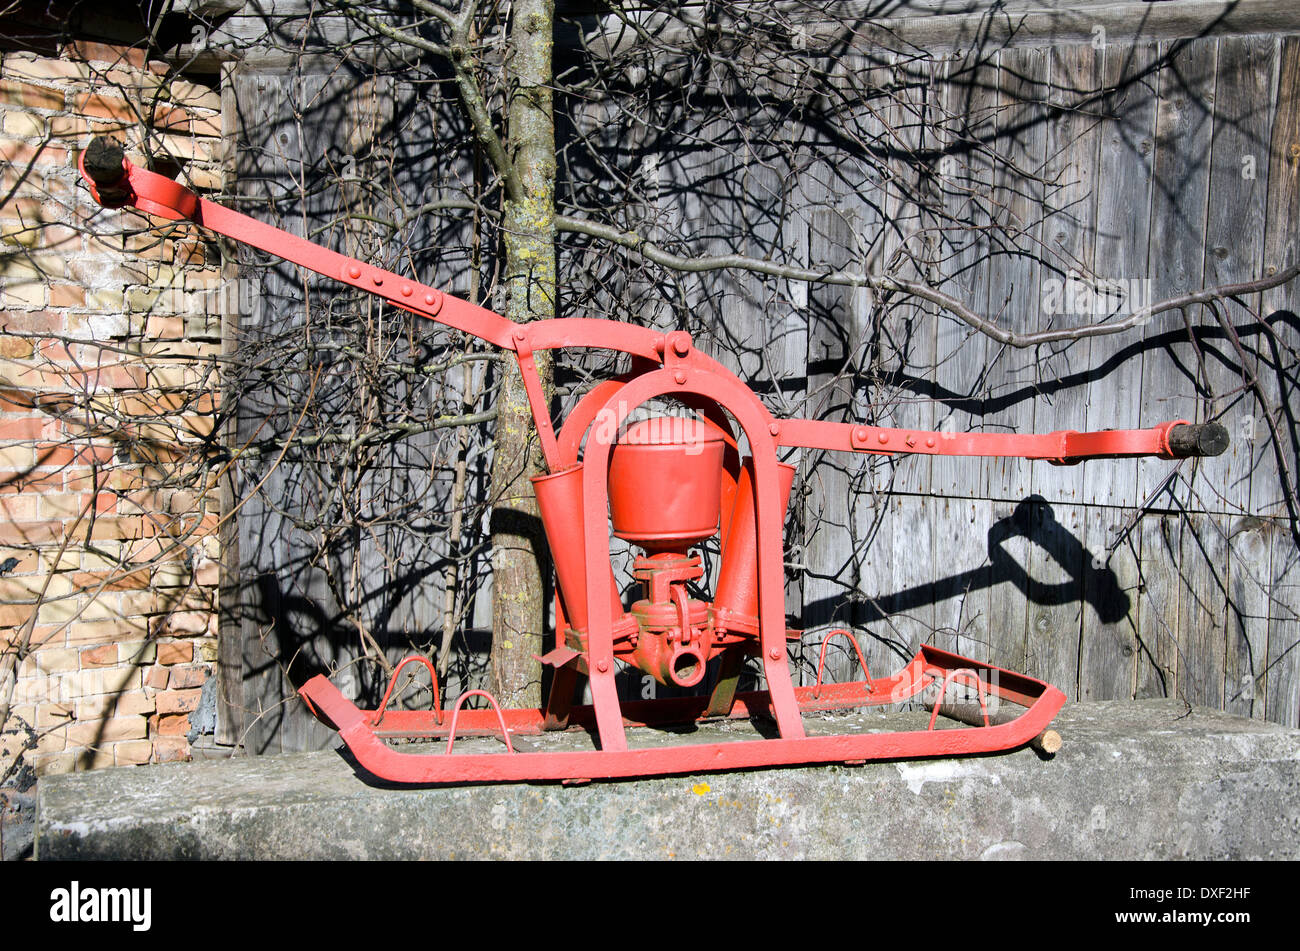 vintage historical two men red fire pump for water - Stock Image